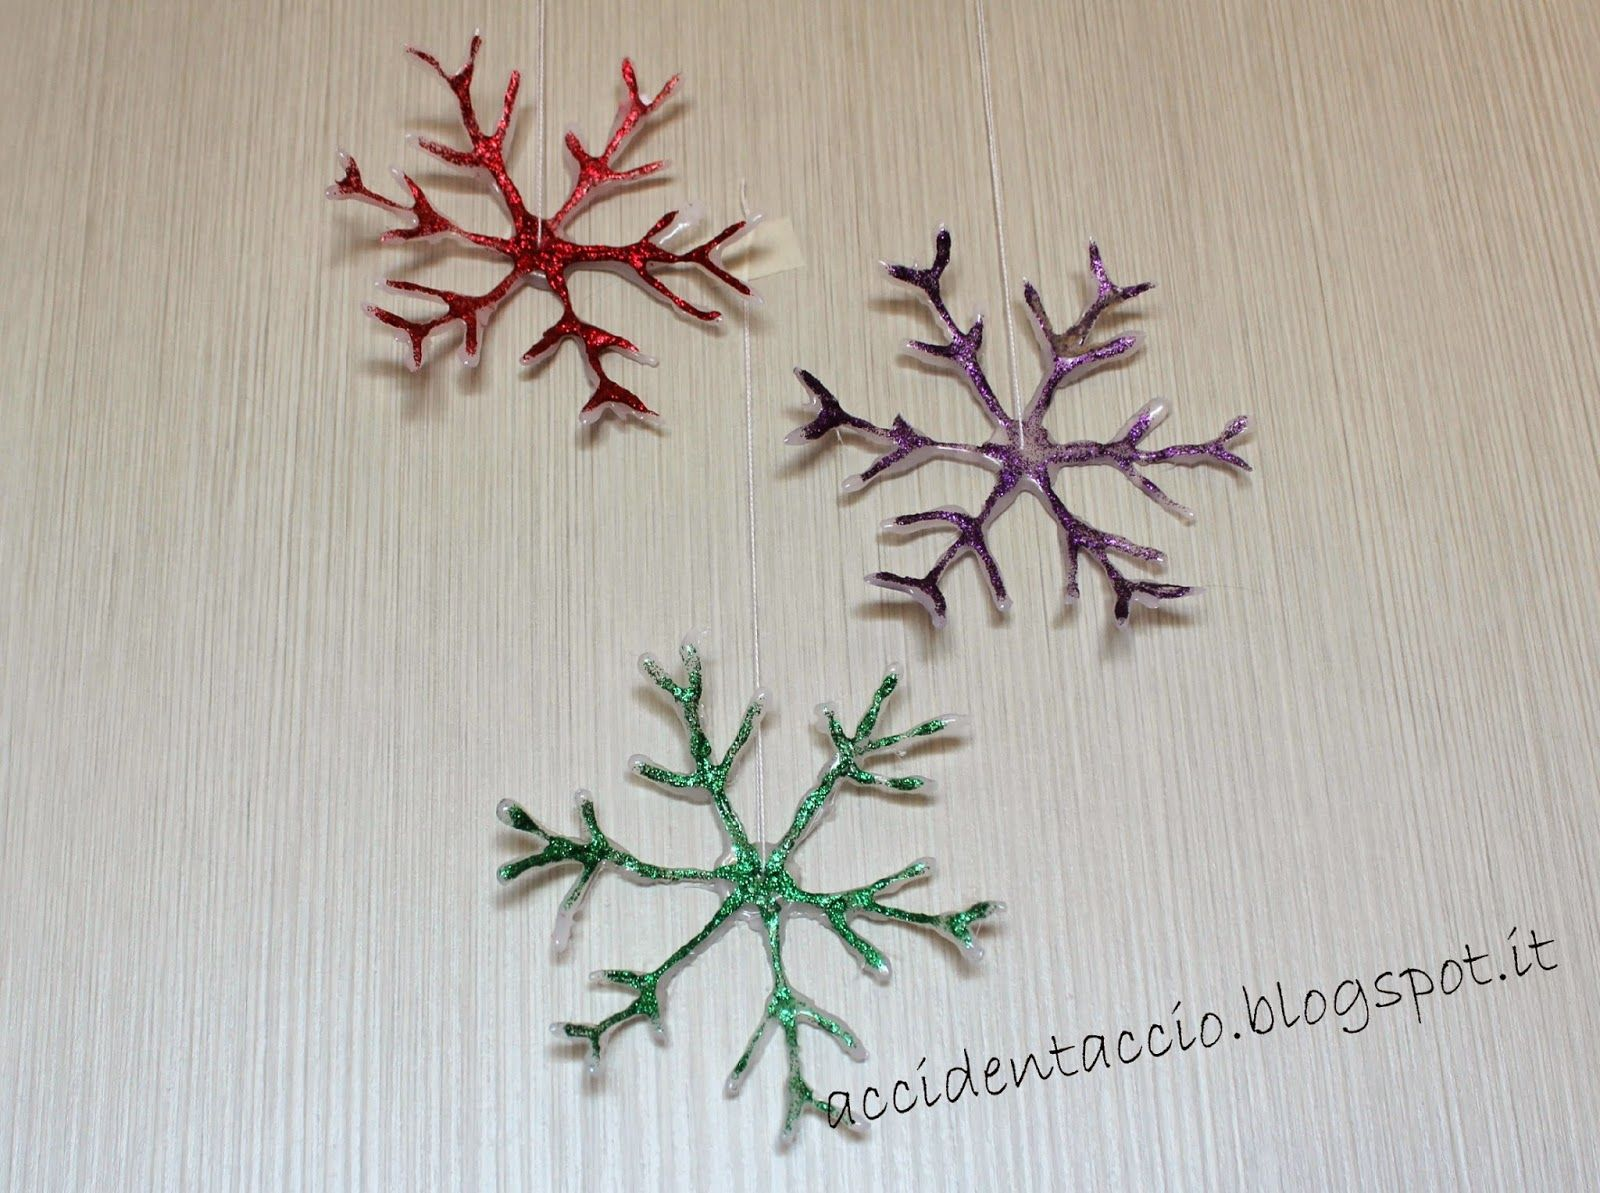 Accidentaccio: Christmas Inspirations Blog Hop #4 - Fiocchi di Neve DIY - part 1